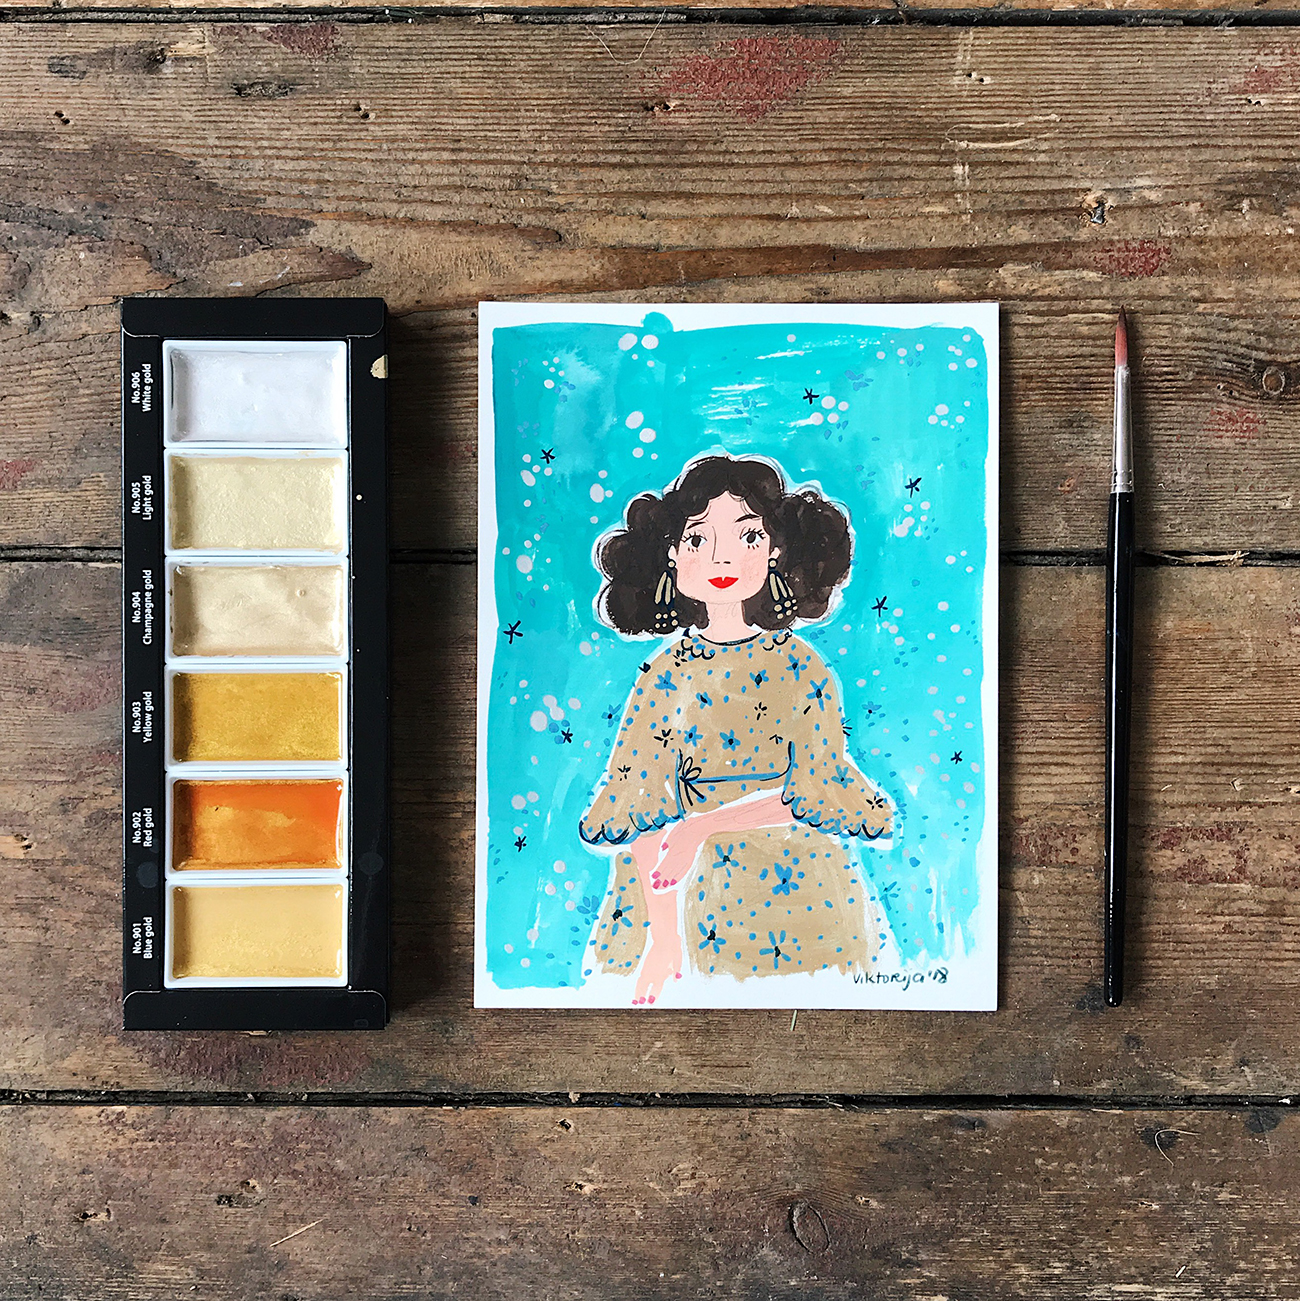 Viktorija Semjonova's drawing of a girl in a gold dress using Kuretake Gansai Tambi Japanese Watercolour Starry set and Holbein Gouache.